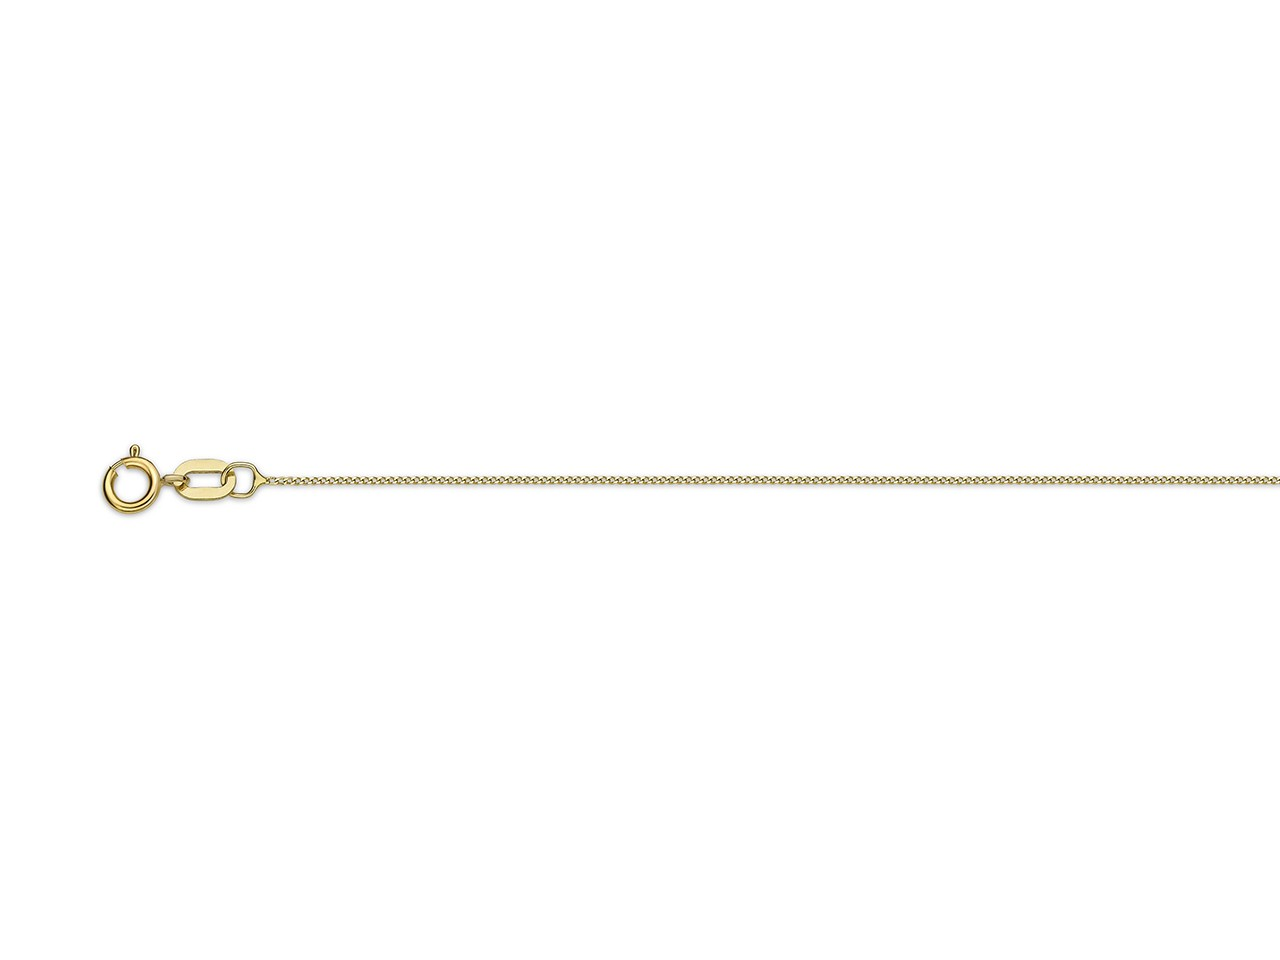 Collier Gourmette limée 0,60 mm, 40 cm, Or jaune 18k